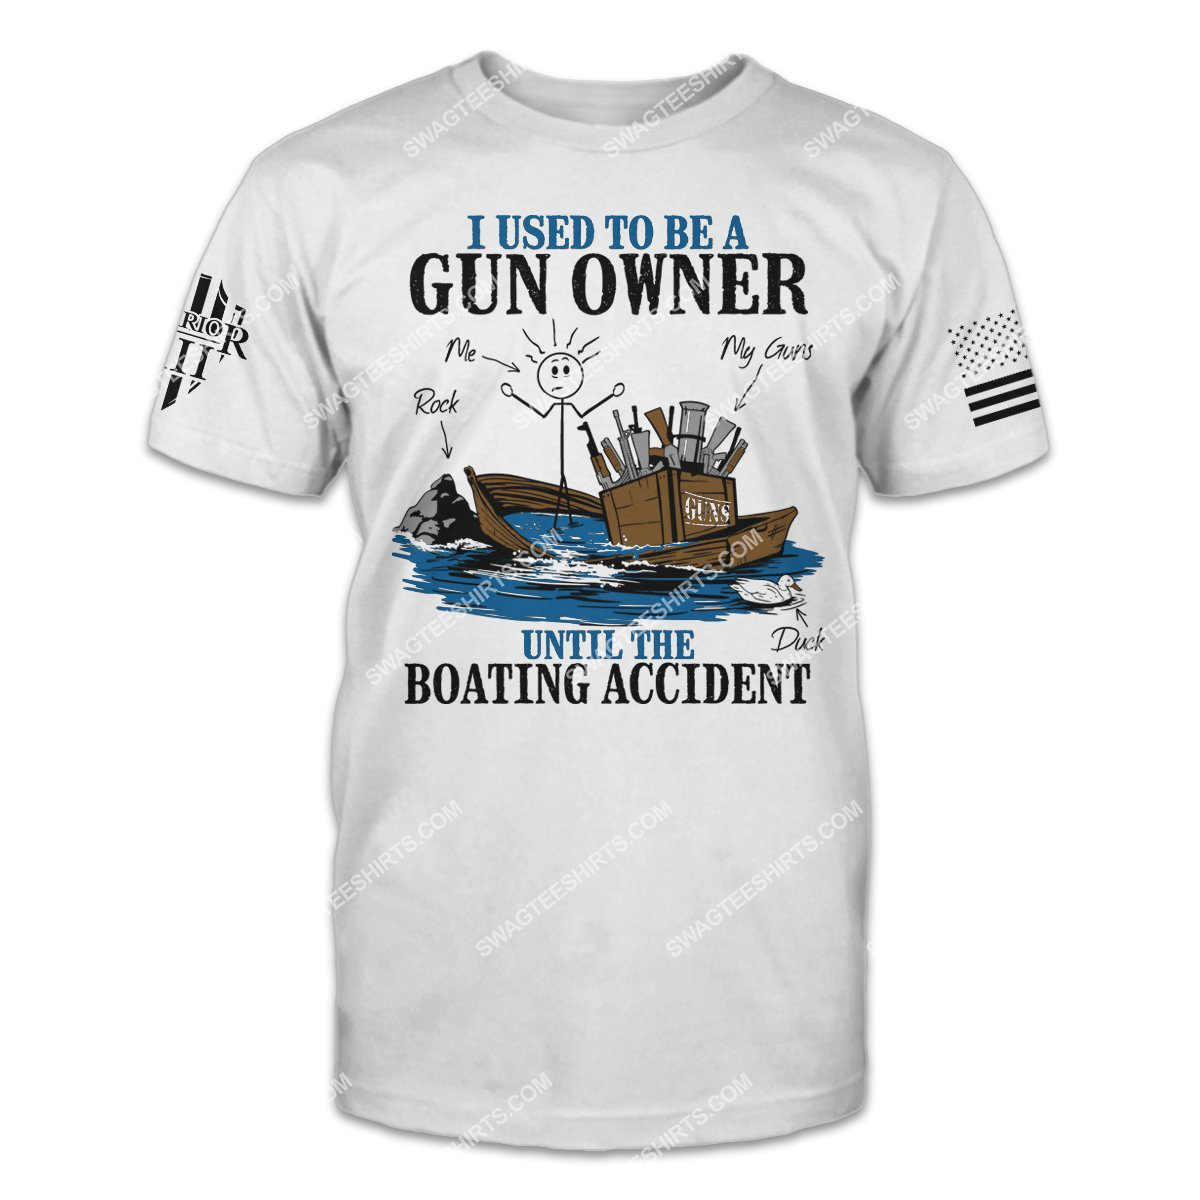 i used to be a gun owner until the boating accident politics shirt 1 - Copy (3)